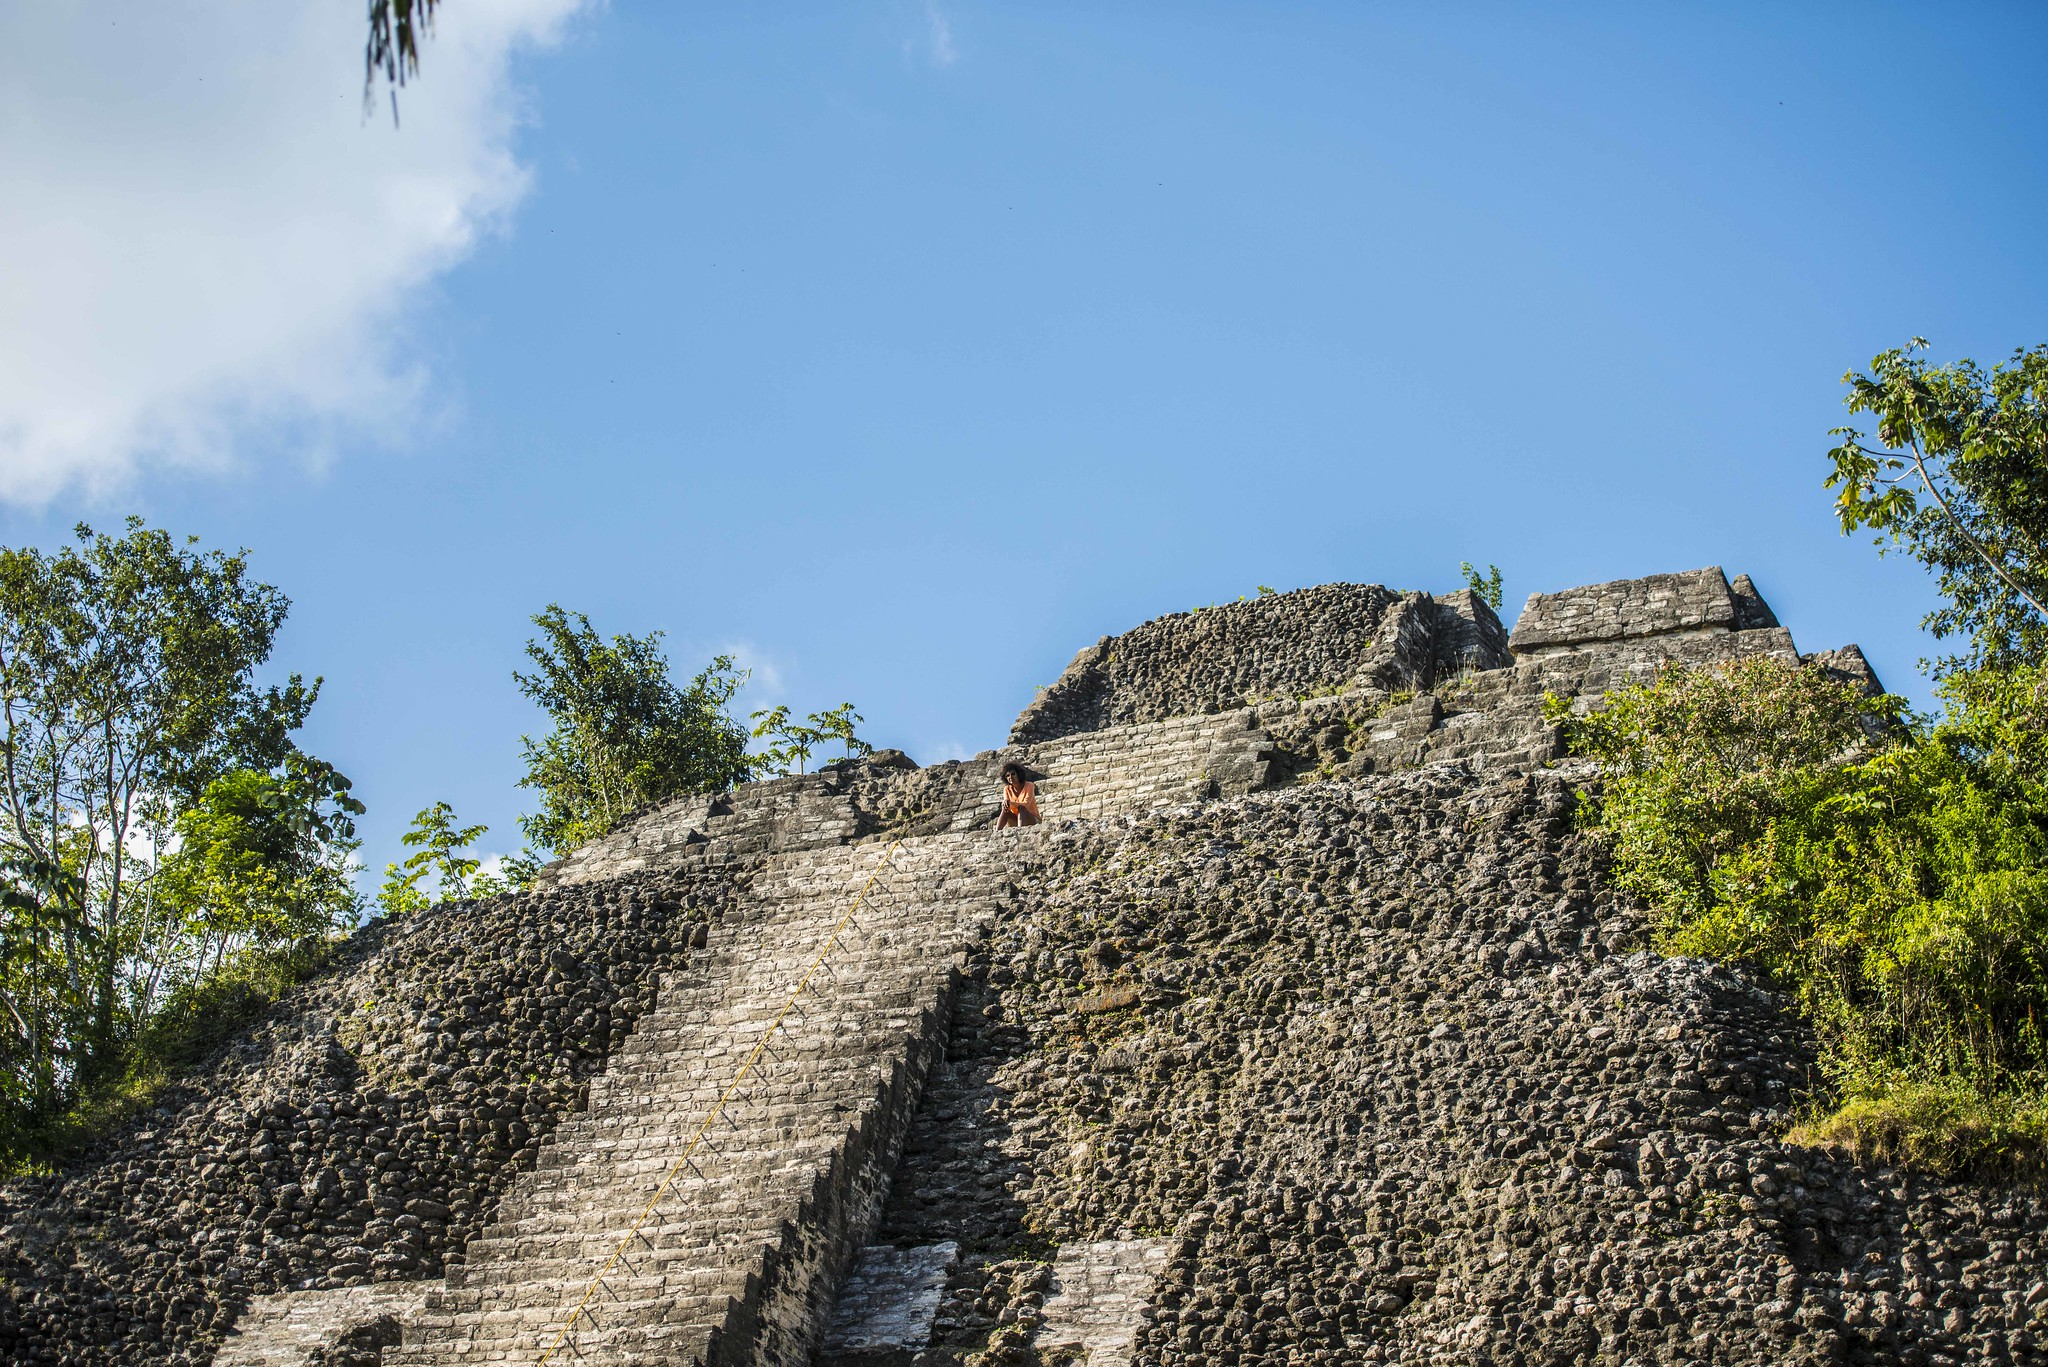 Belize Tourism Board offers free vacation to frontline workers 2